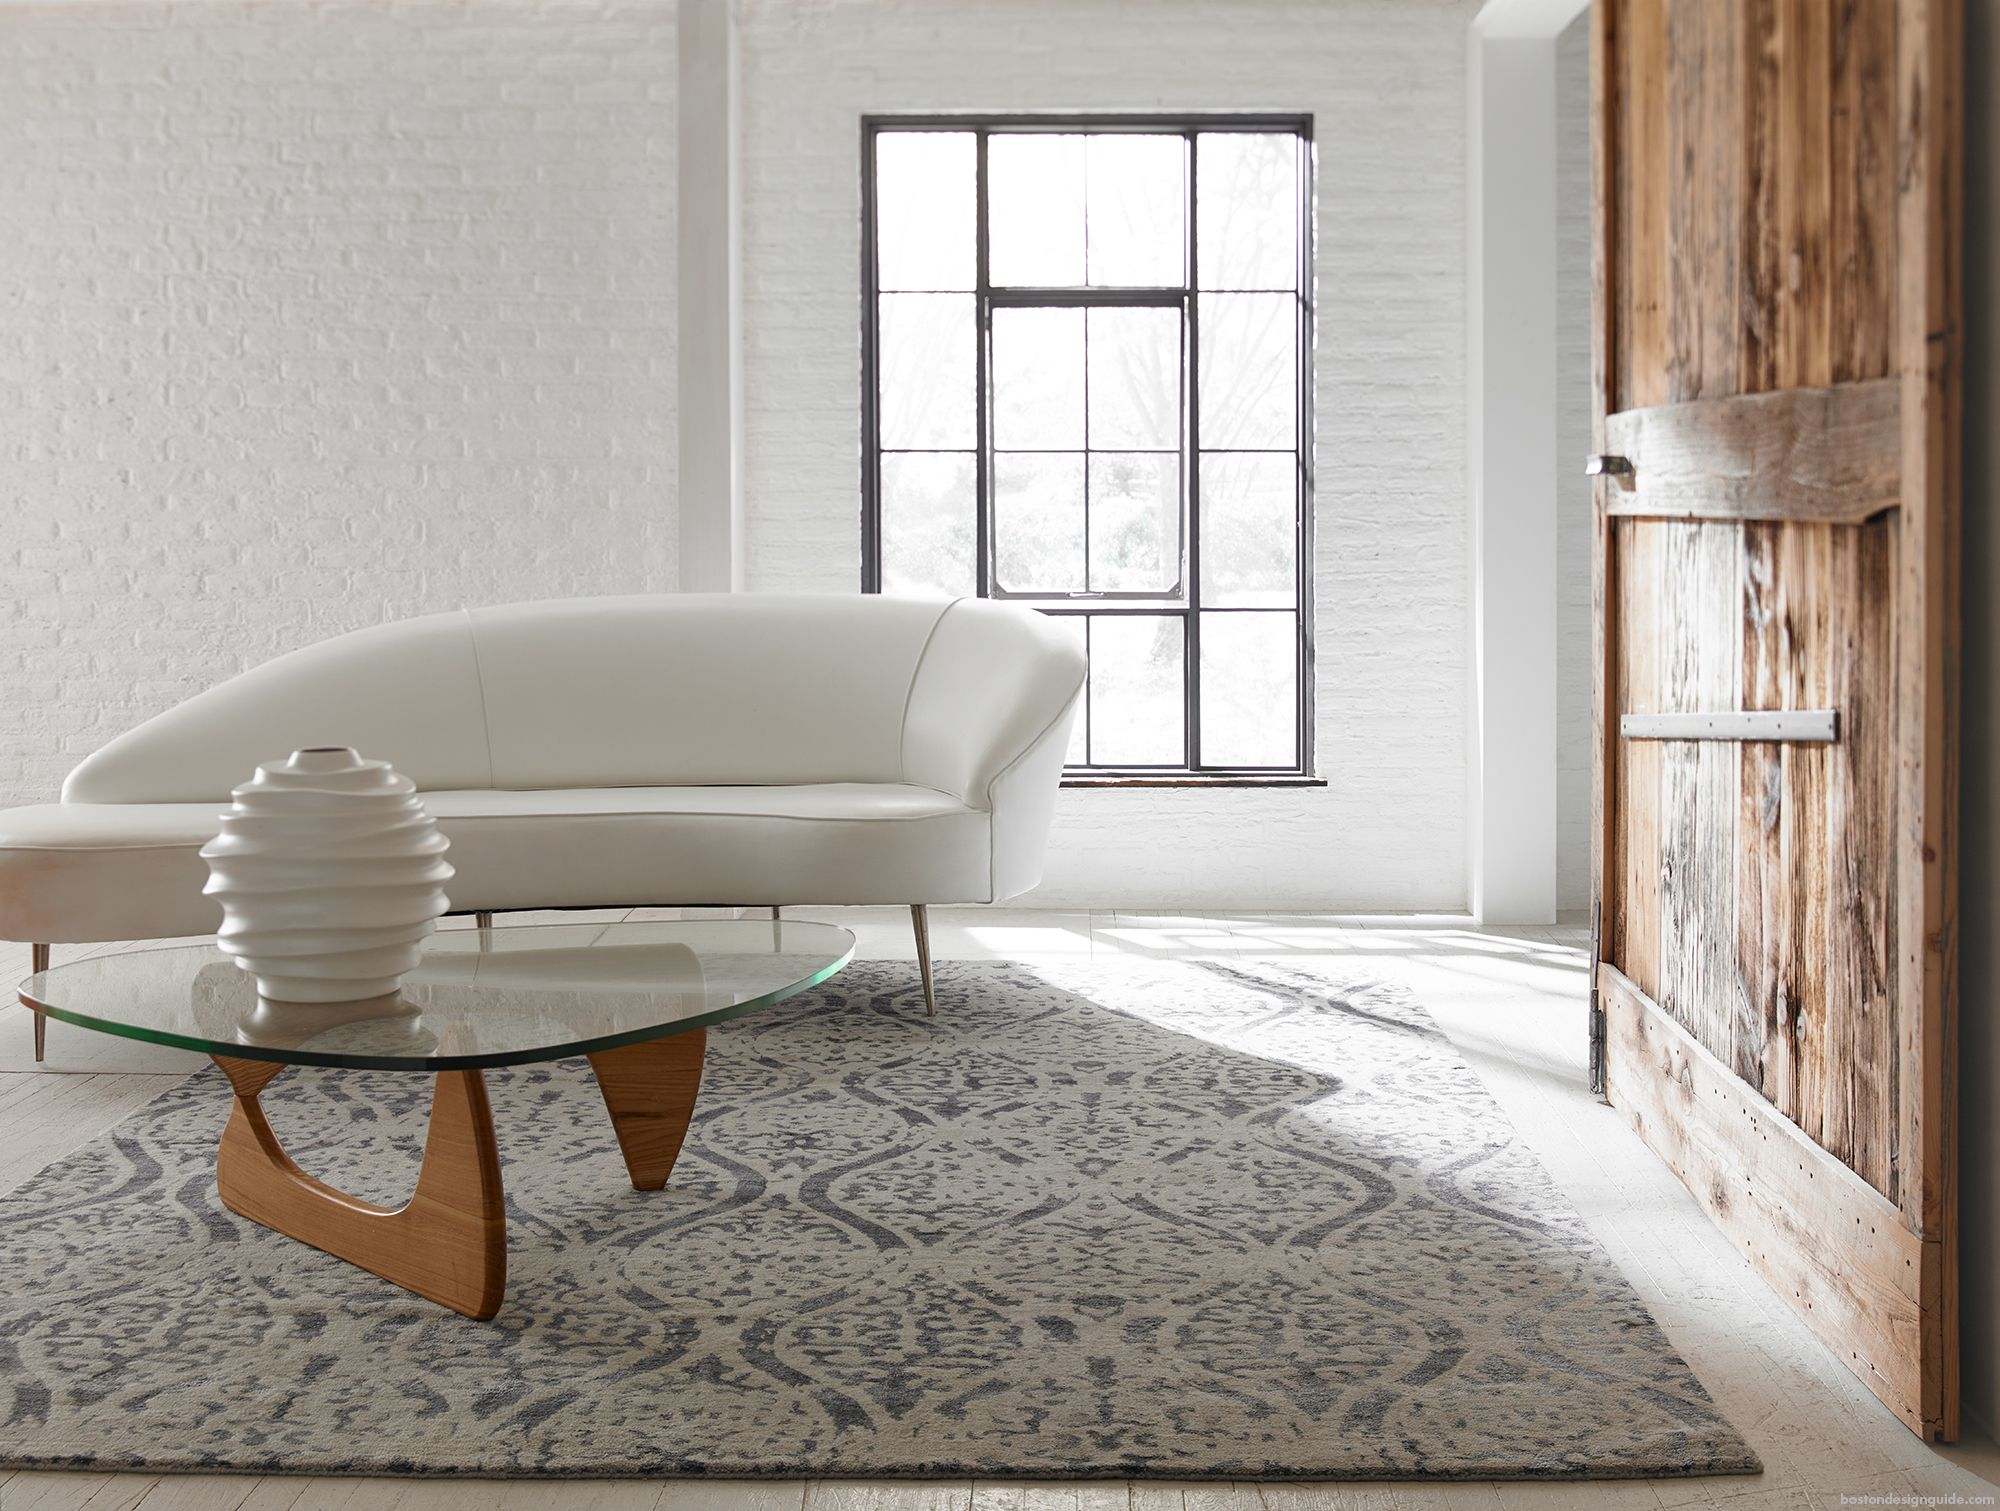 Boston Rug Company | Quality Rugs And Services In New England